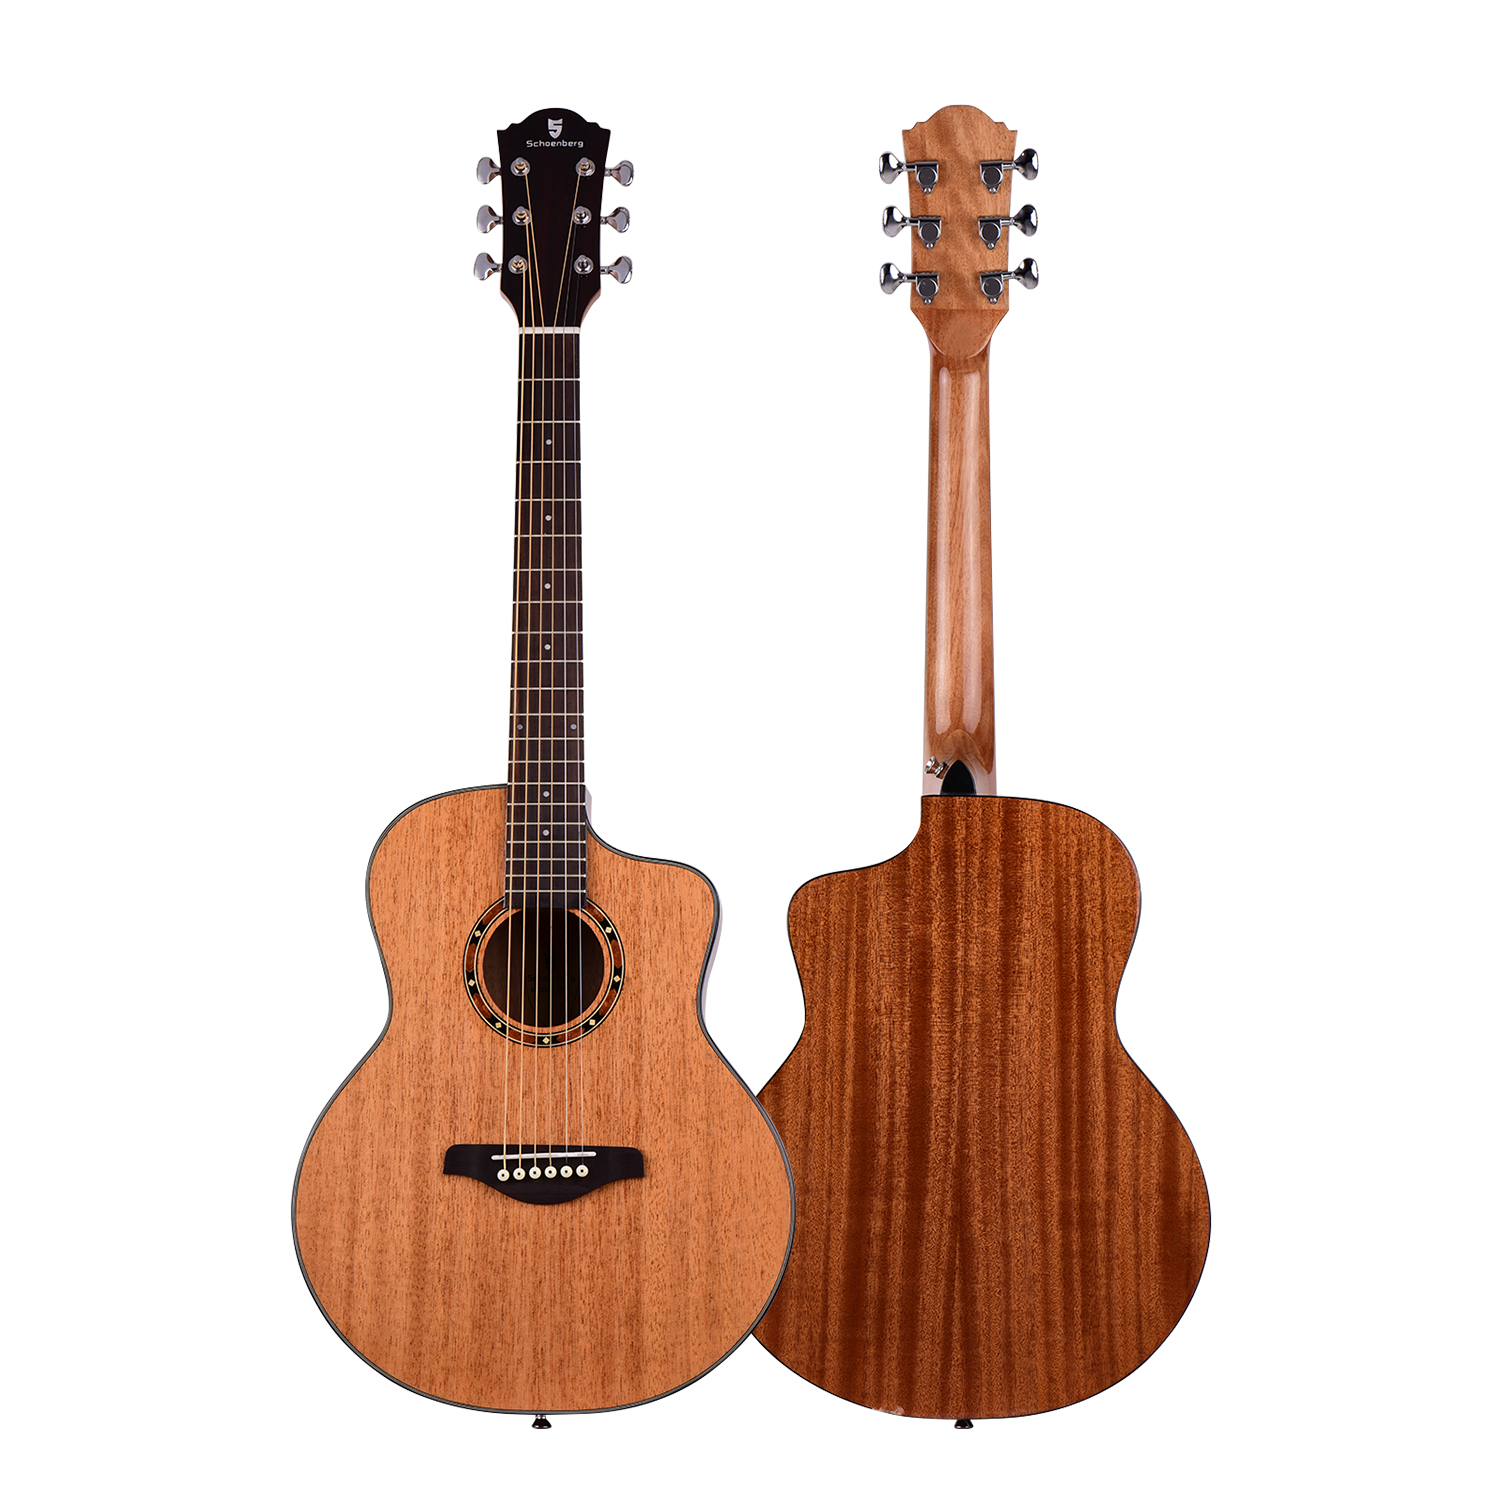 Acoustic <font><b>Guitar</b></font> <font><b>36</b></font> Inch Mahogany Wood Material with Gig Bag Strap Spare Strings Capo Picks <font><b>Guitars</b></font> Kit for Beginners image